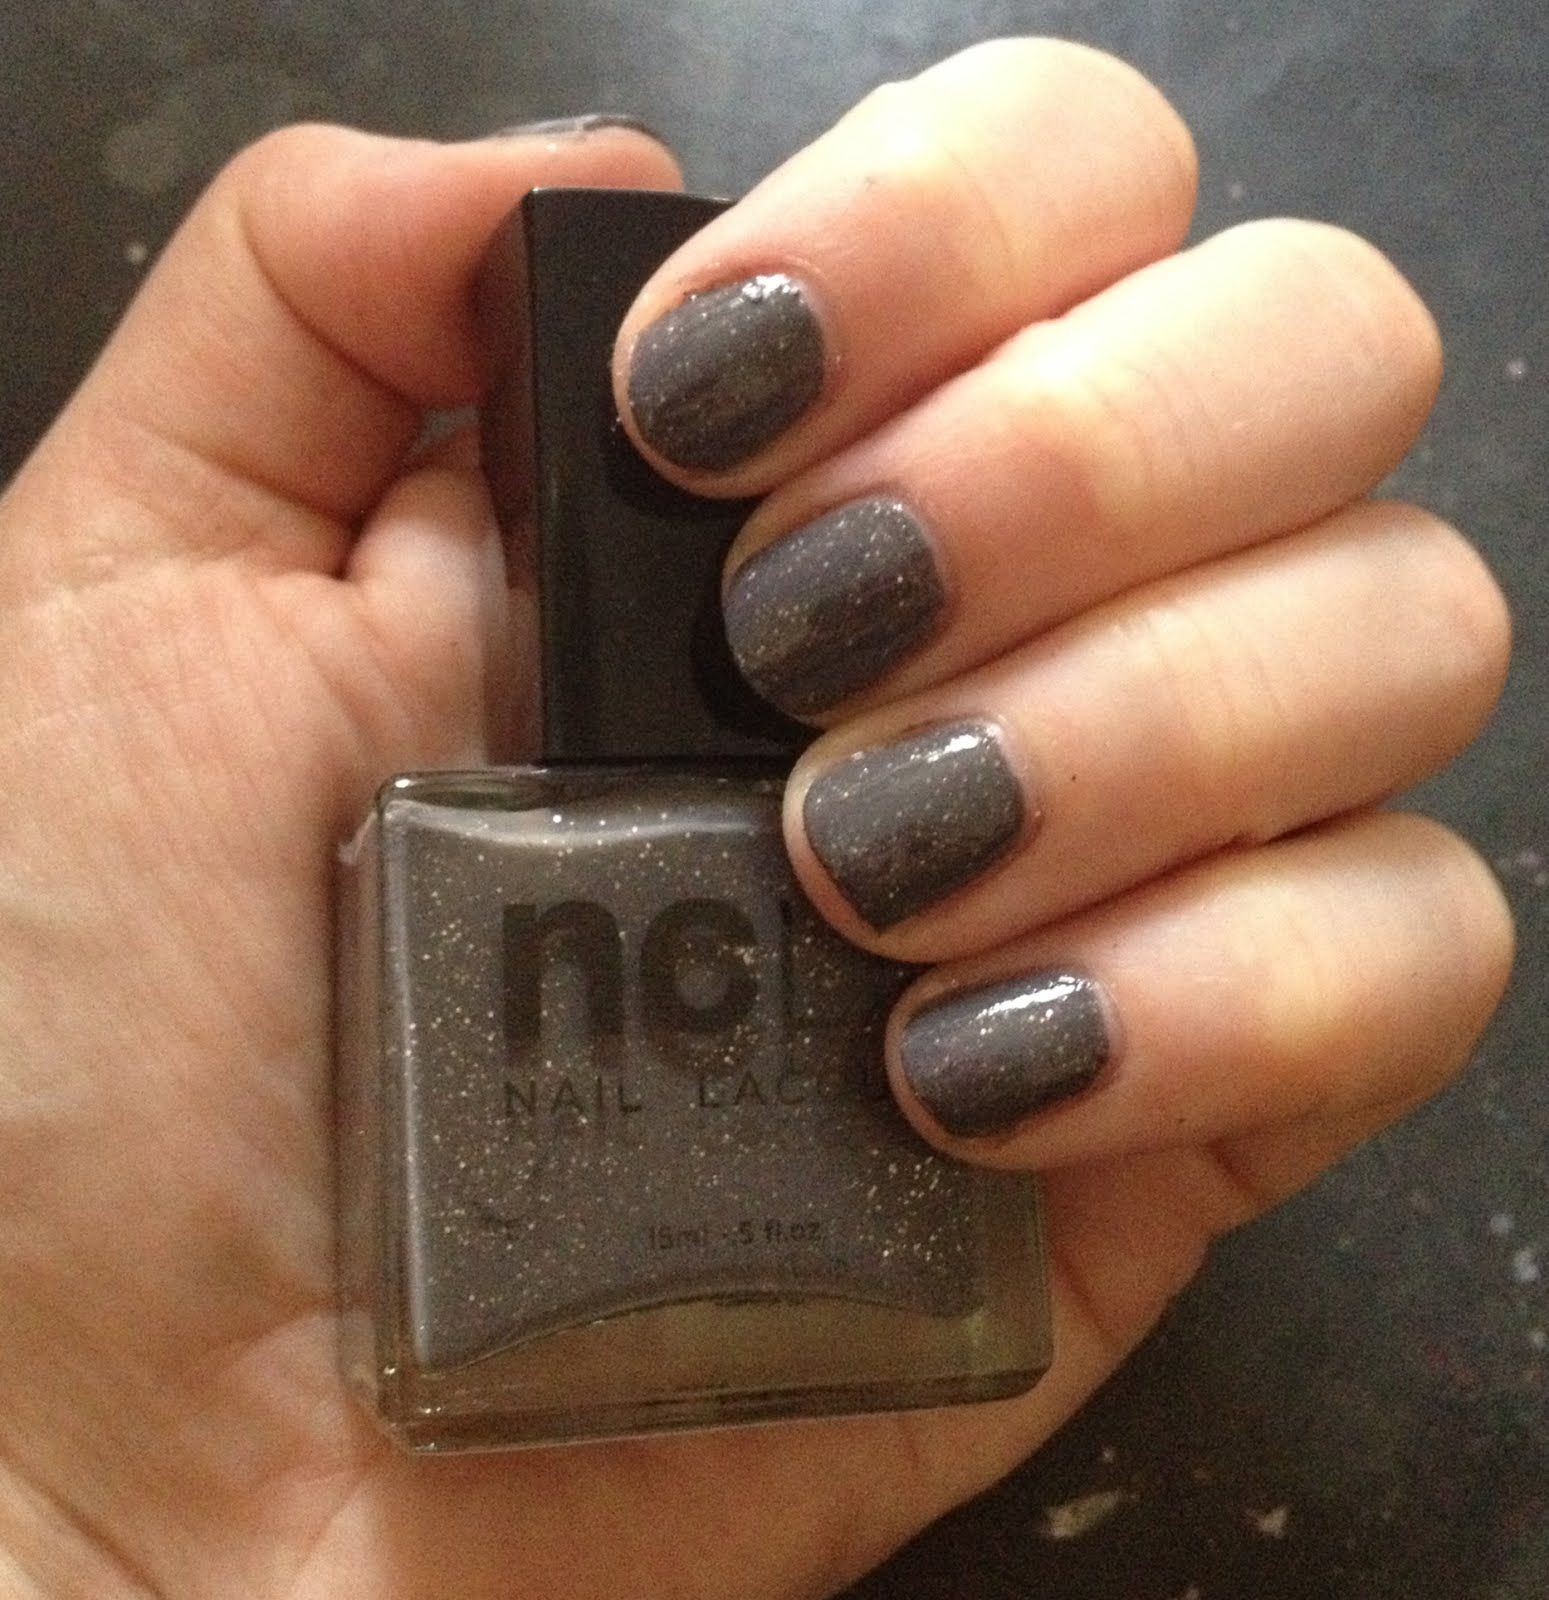 The Beauty of Life: My Latest Mani: NCLA Rock Solid